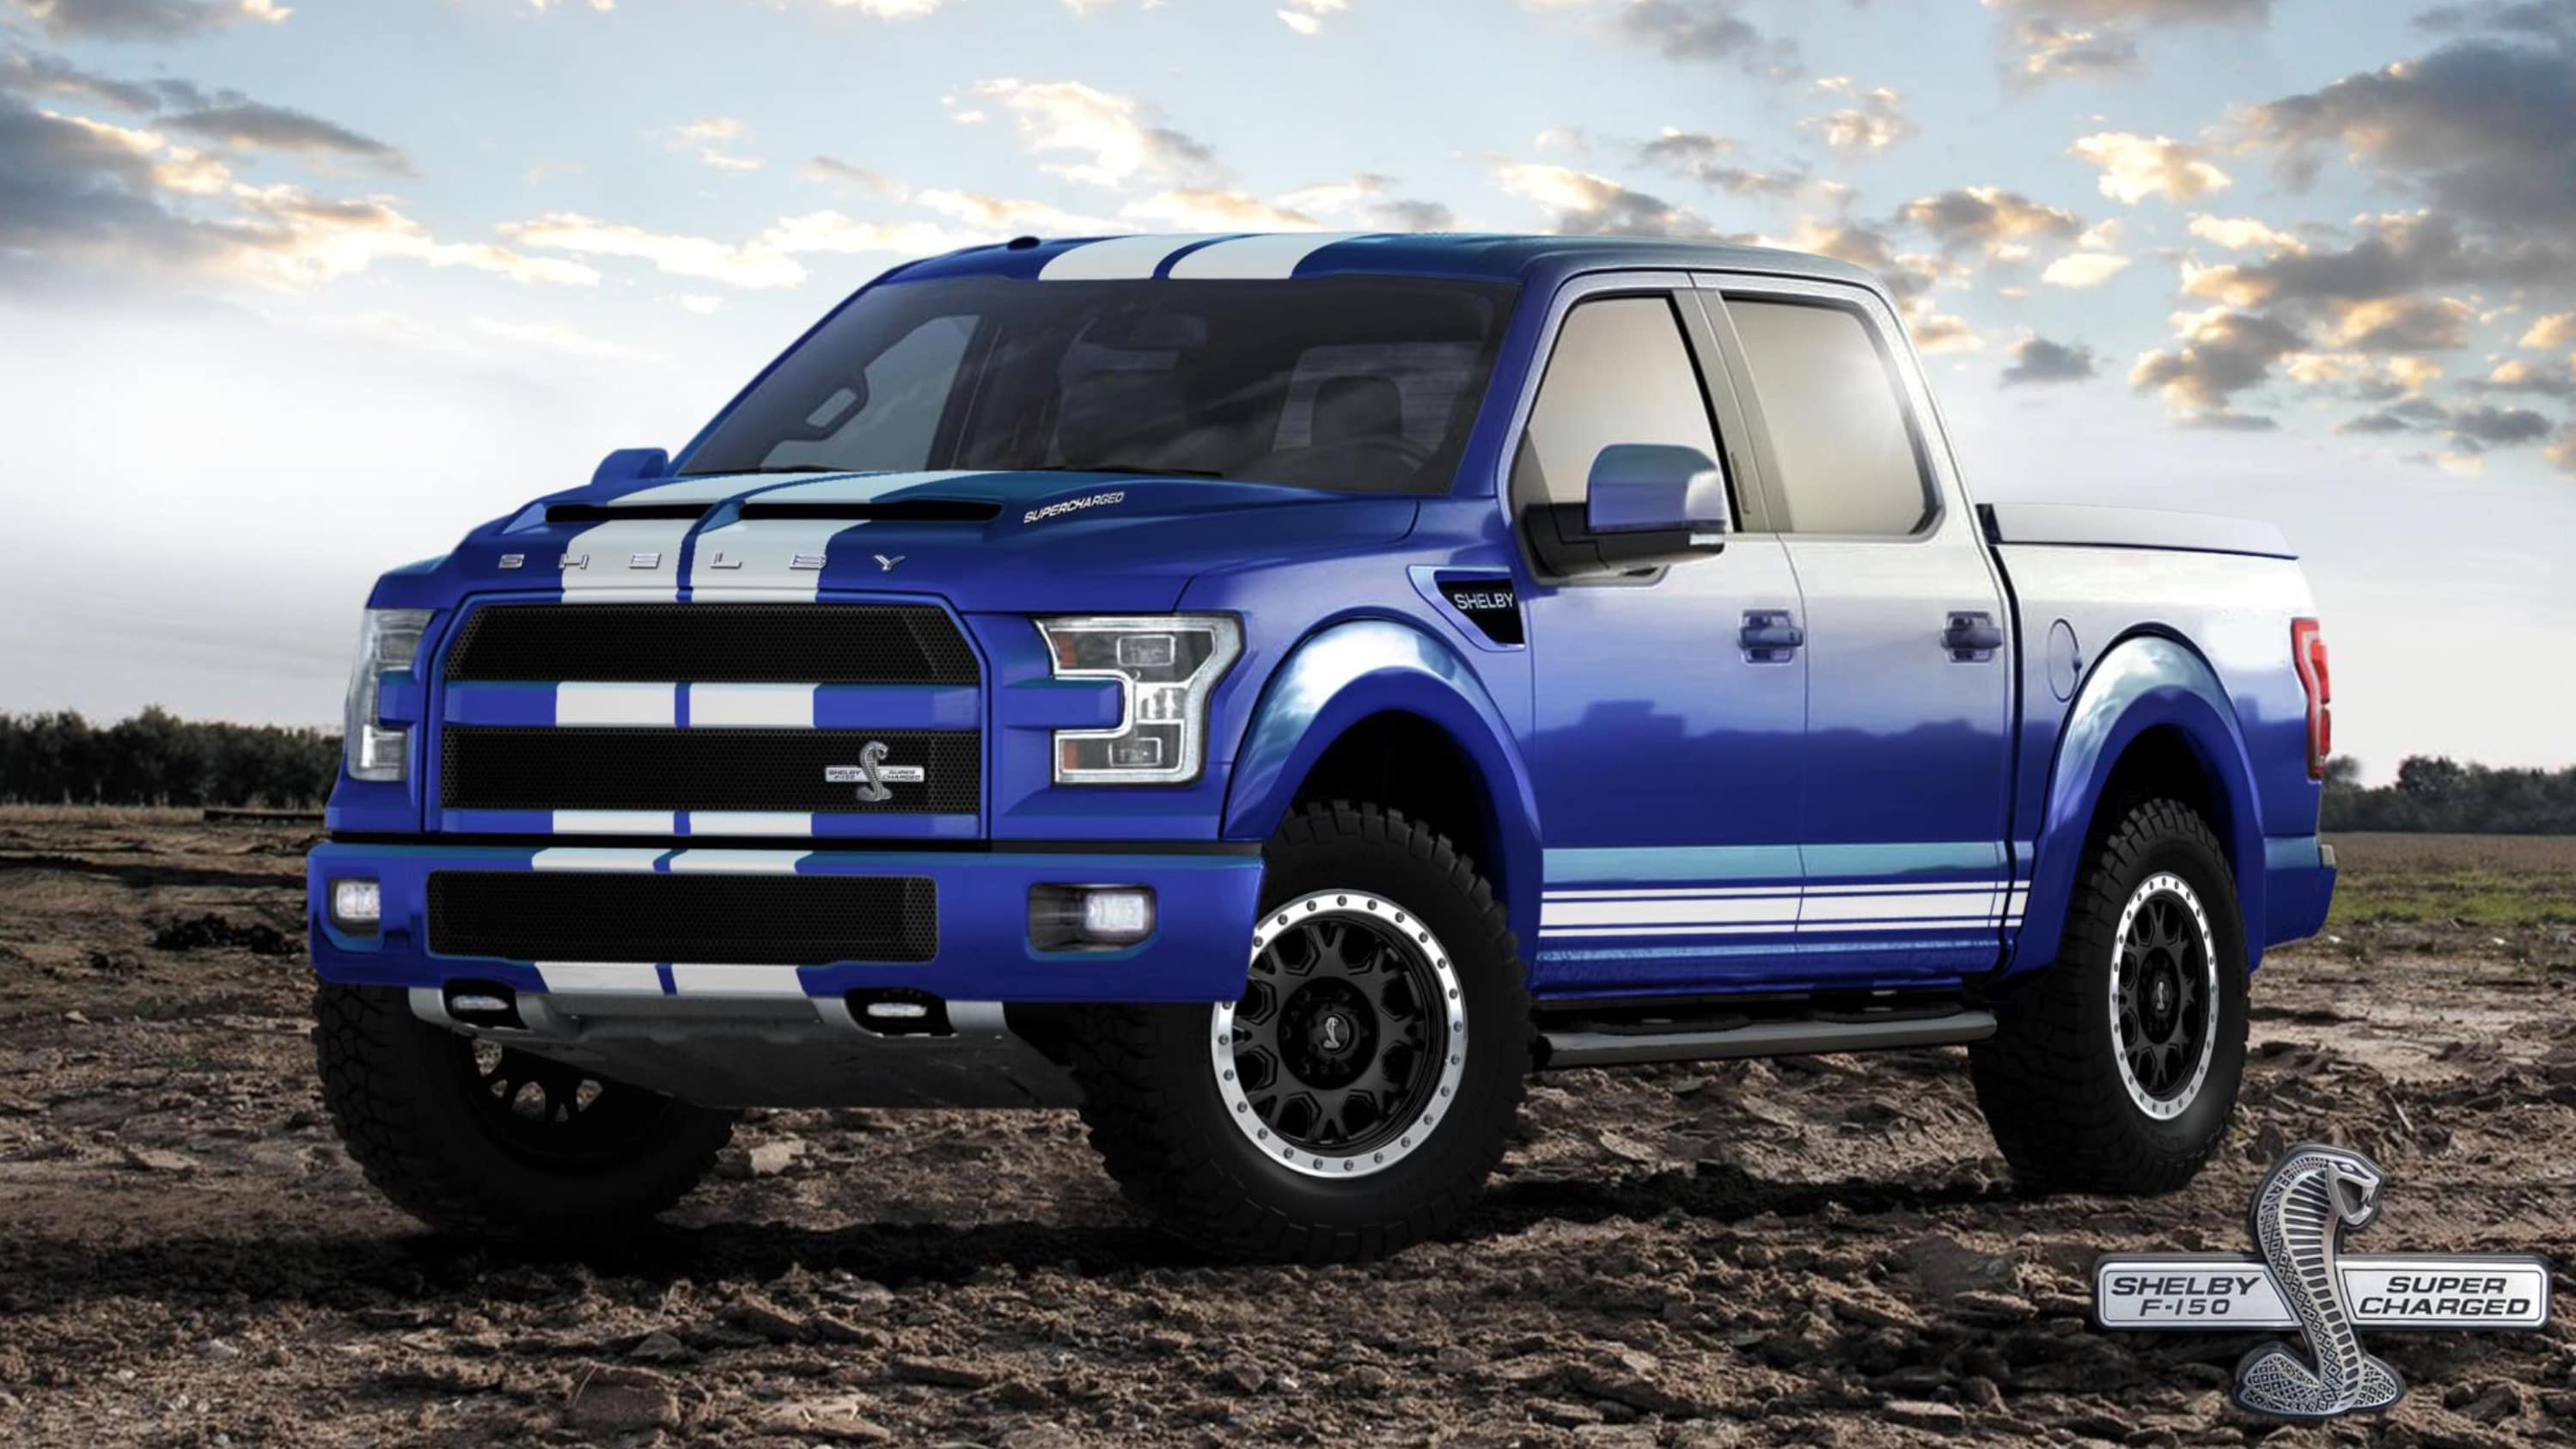 Shelby Brings The Blue Thunder To Sema With 700hp F 150 Truck | 2017 - 2018 Cars Reviews